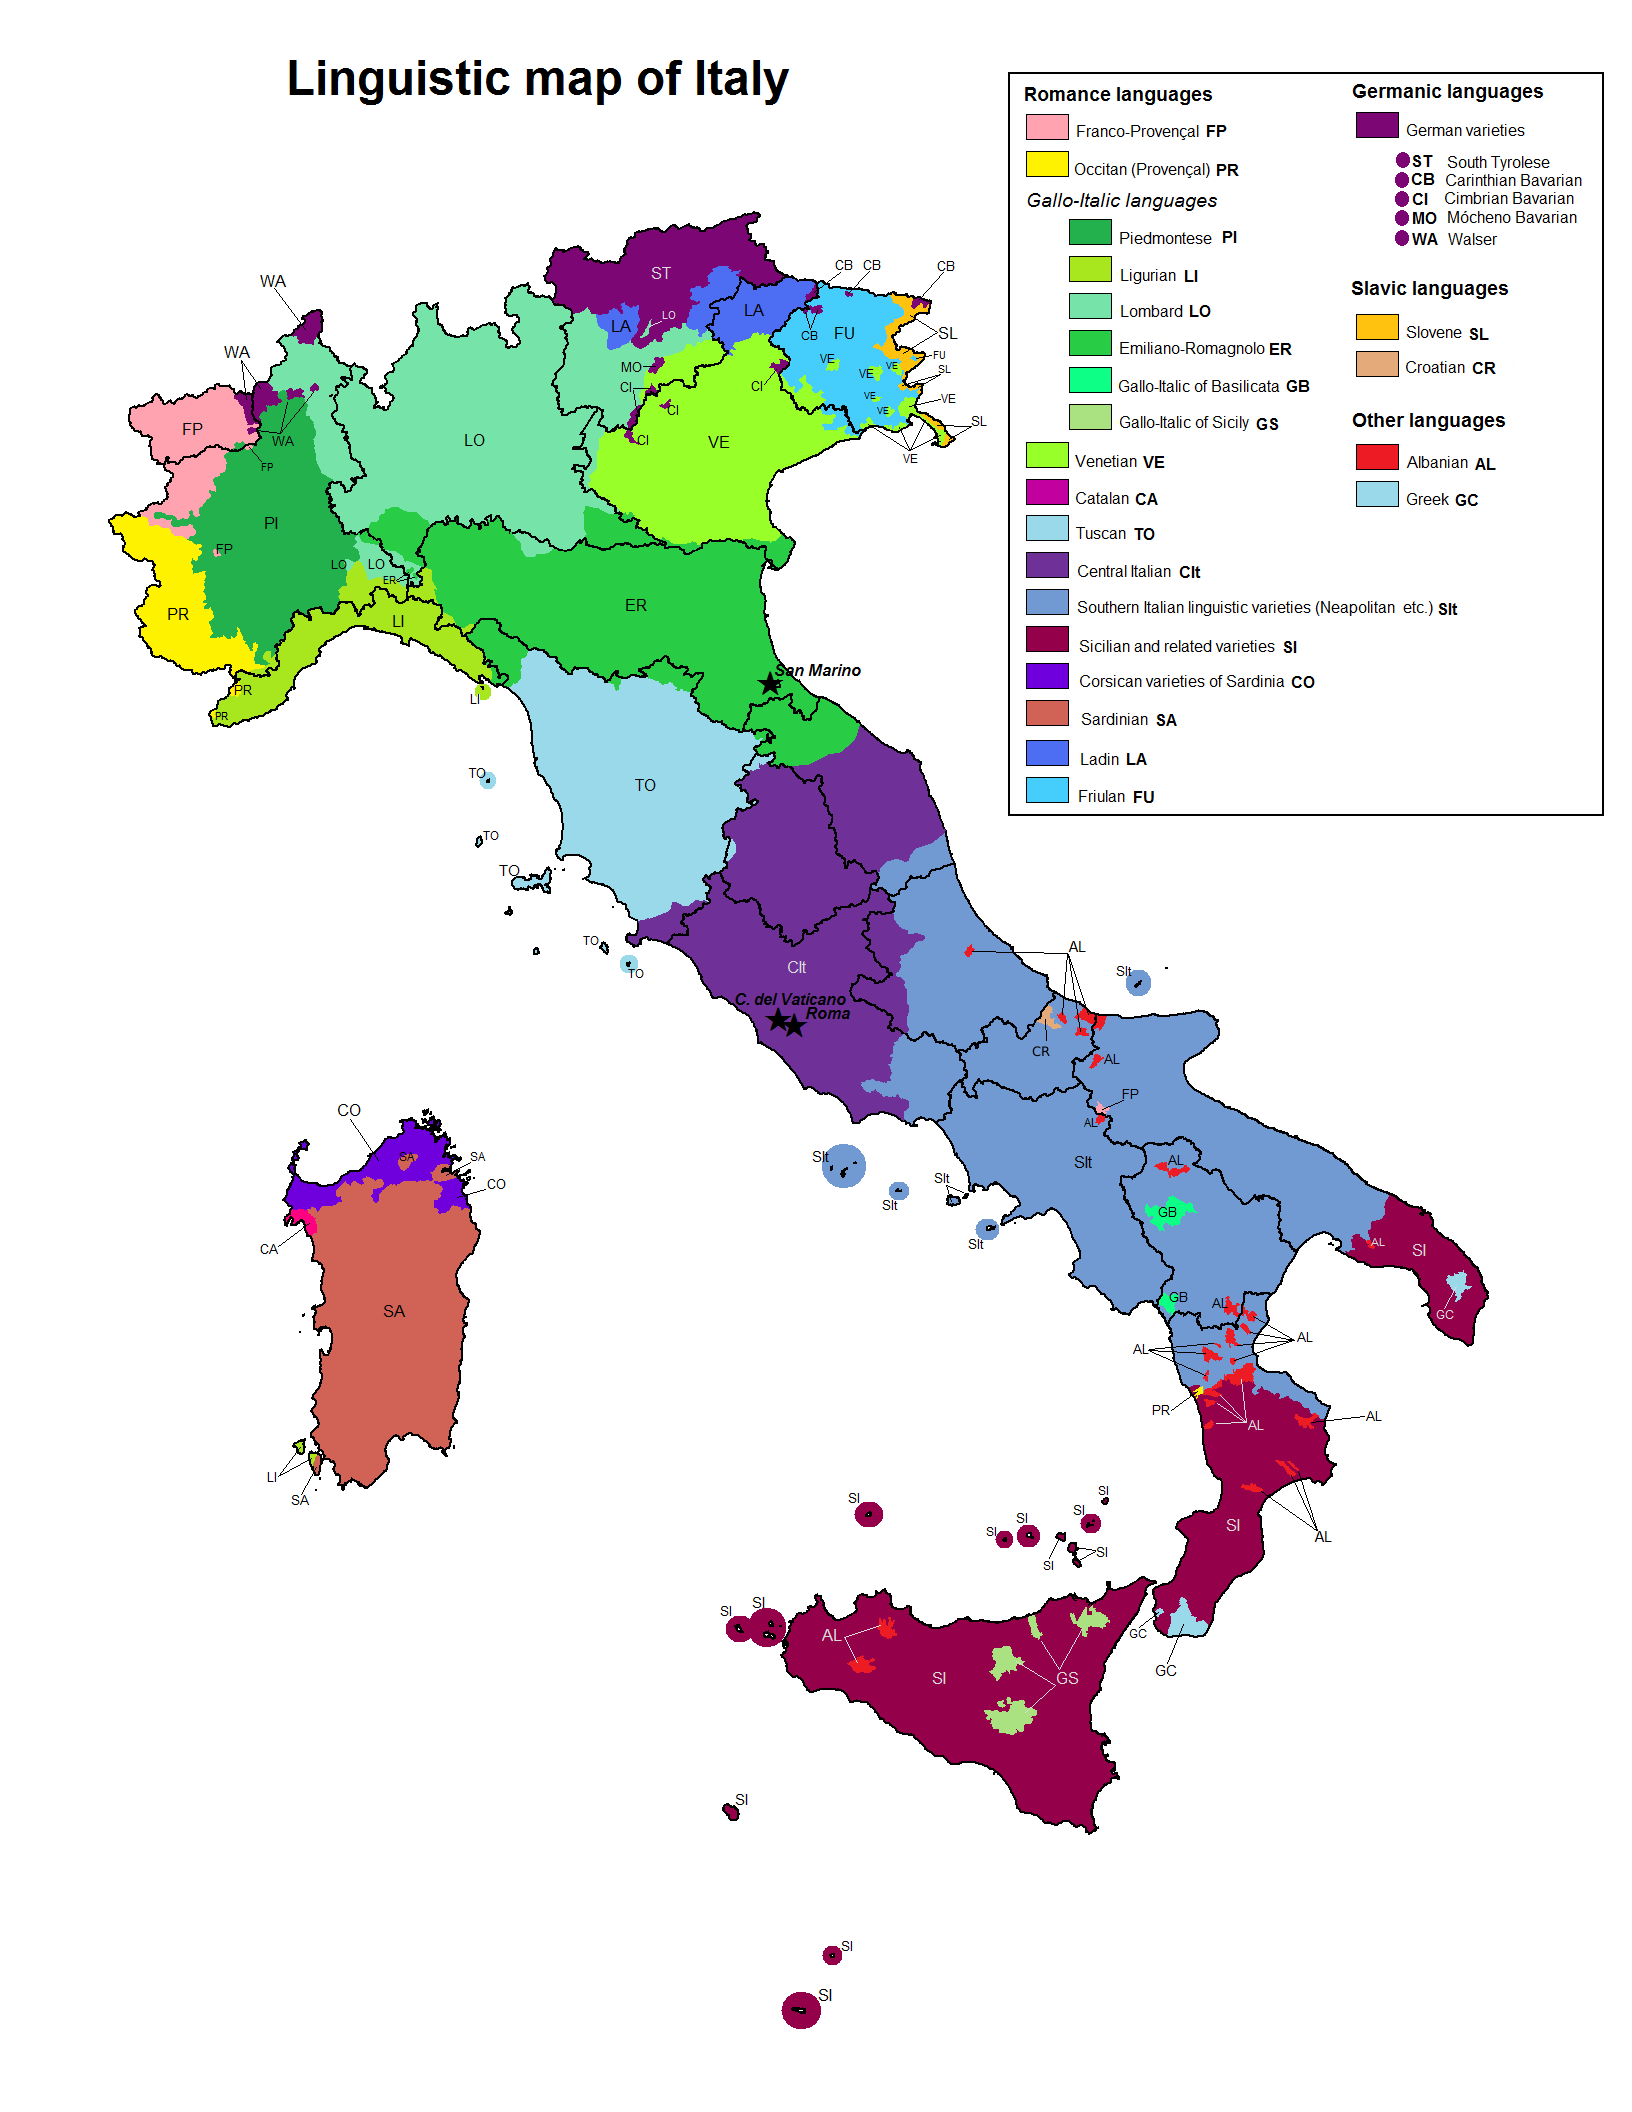 Linguistics are so important This map show the linguistics of Italy